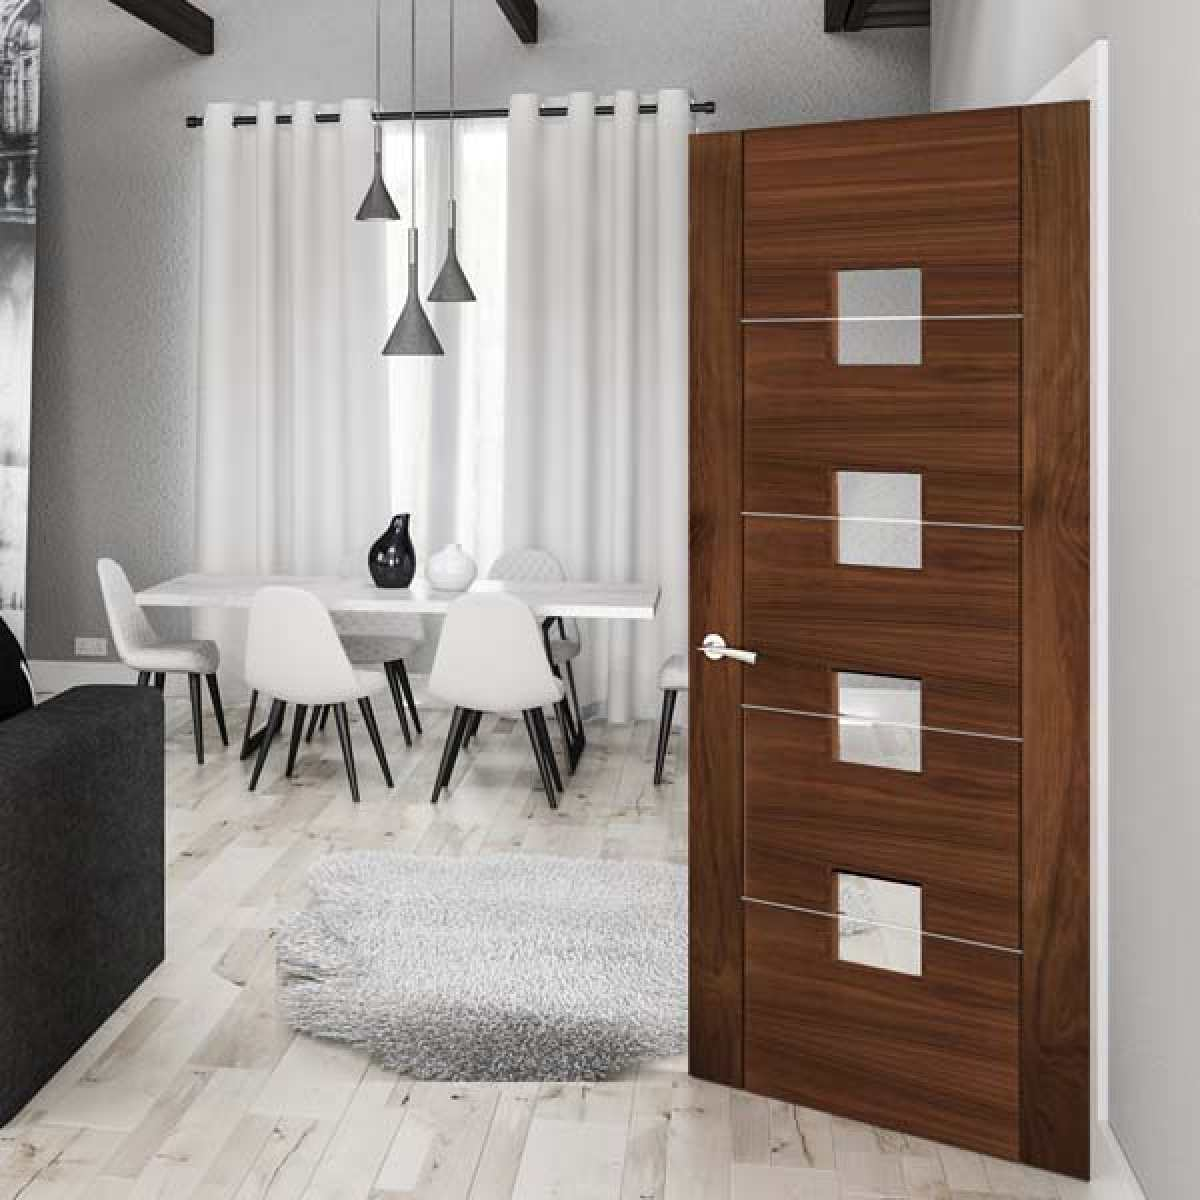 pamplona walnut glazed lifestyle websters Image by Websters Timber